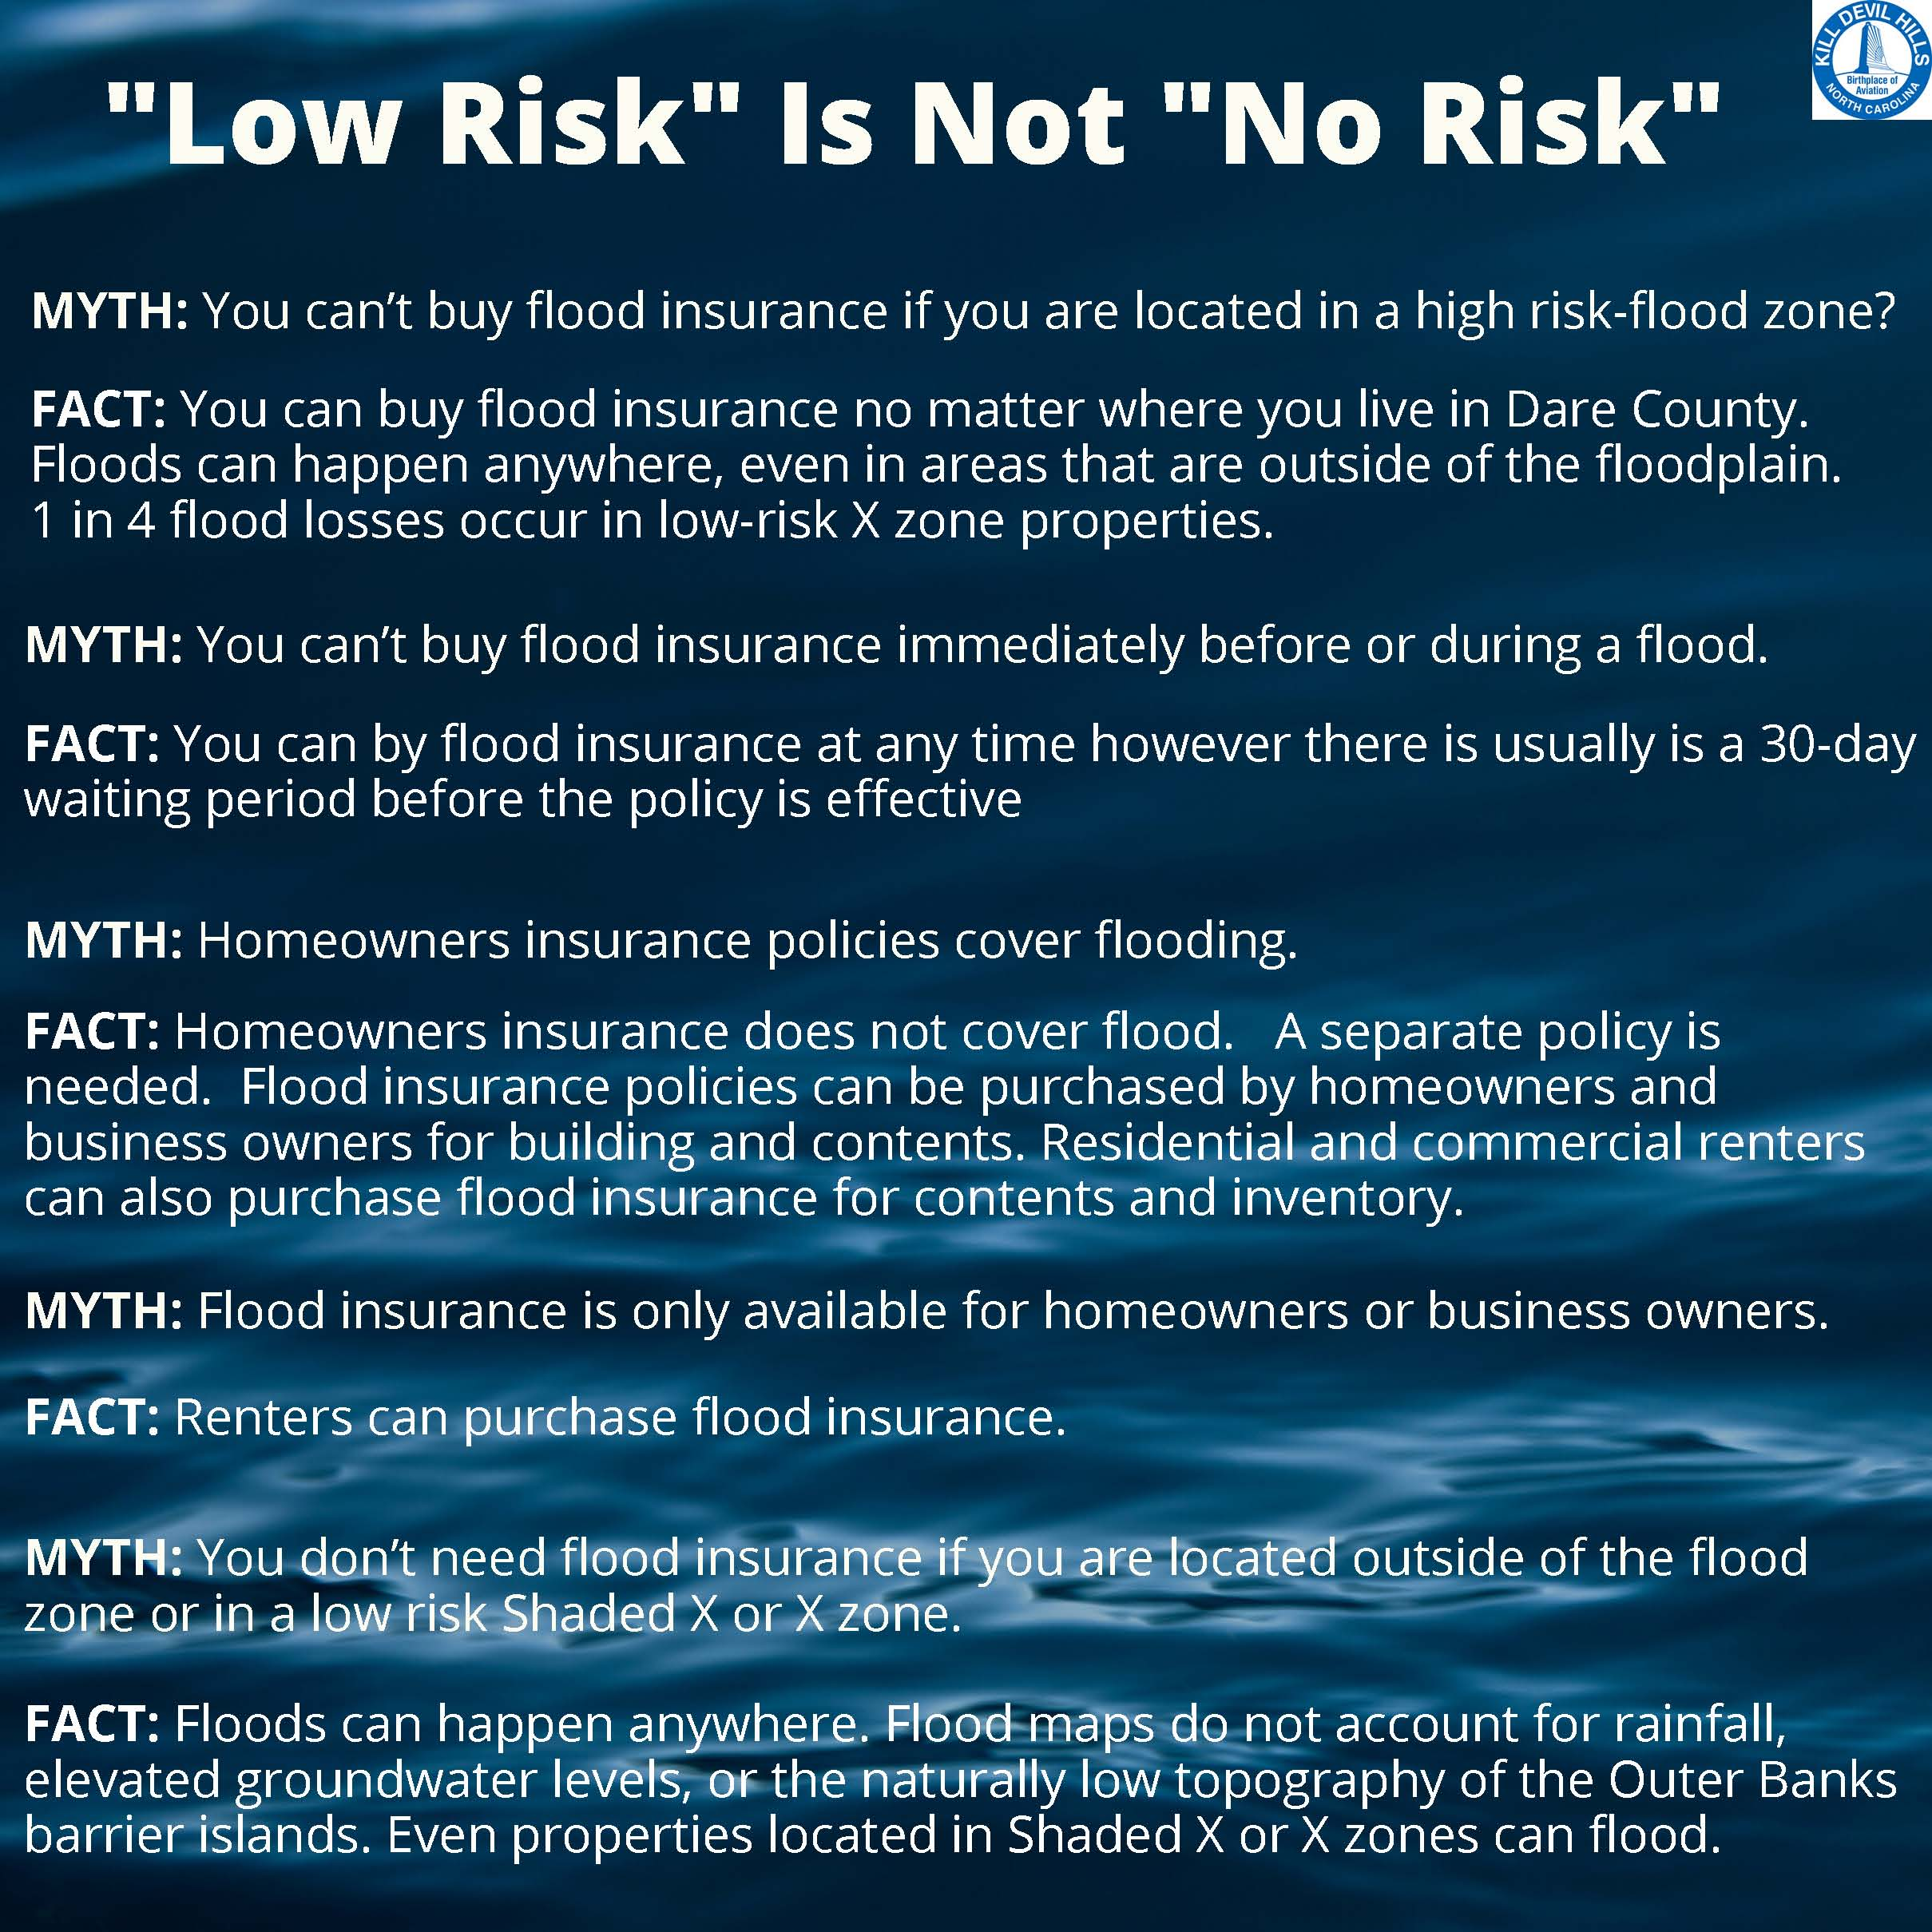 Low Risk Is Not No Risk- Myth vs. Fact